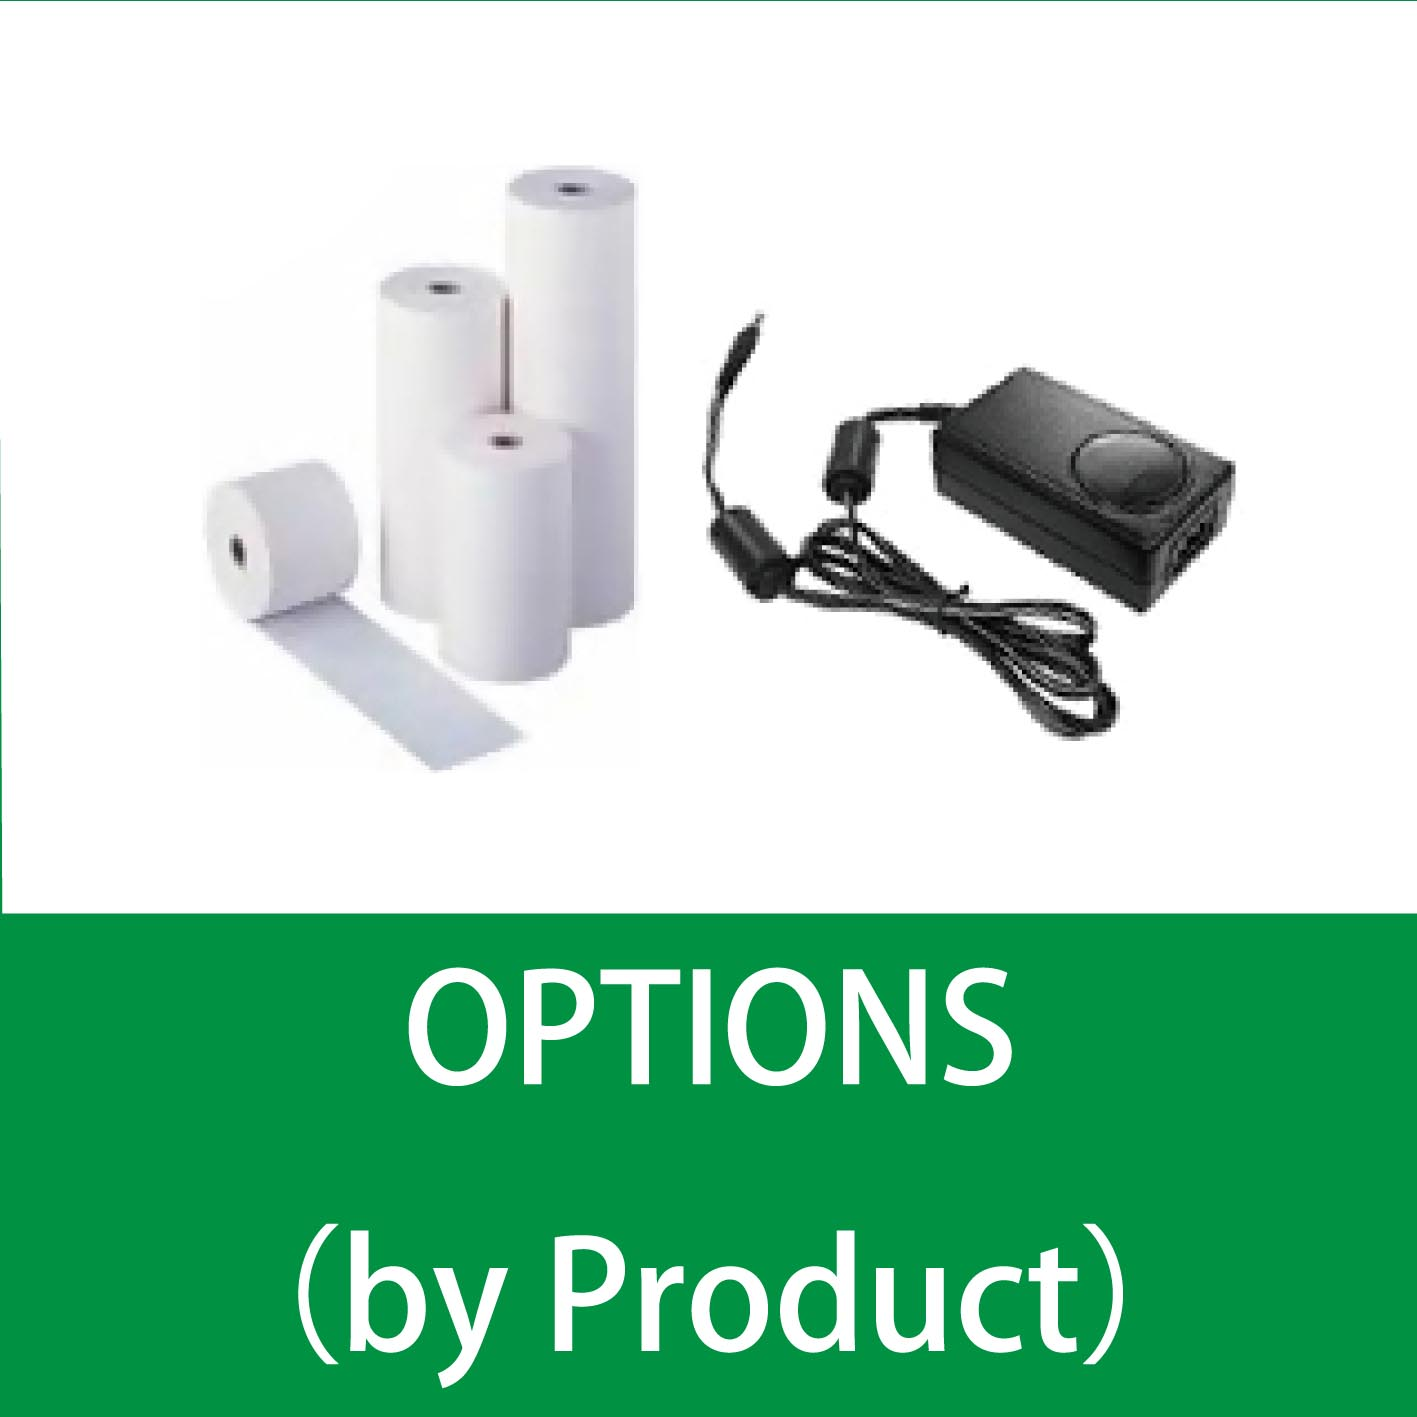 Printer Options(by product)